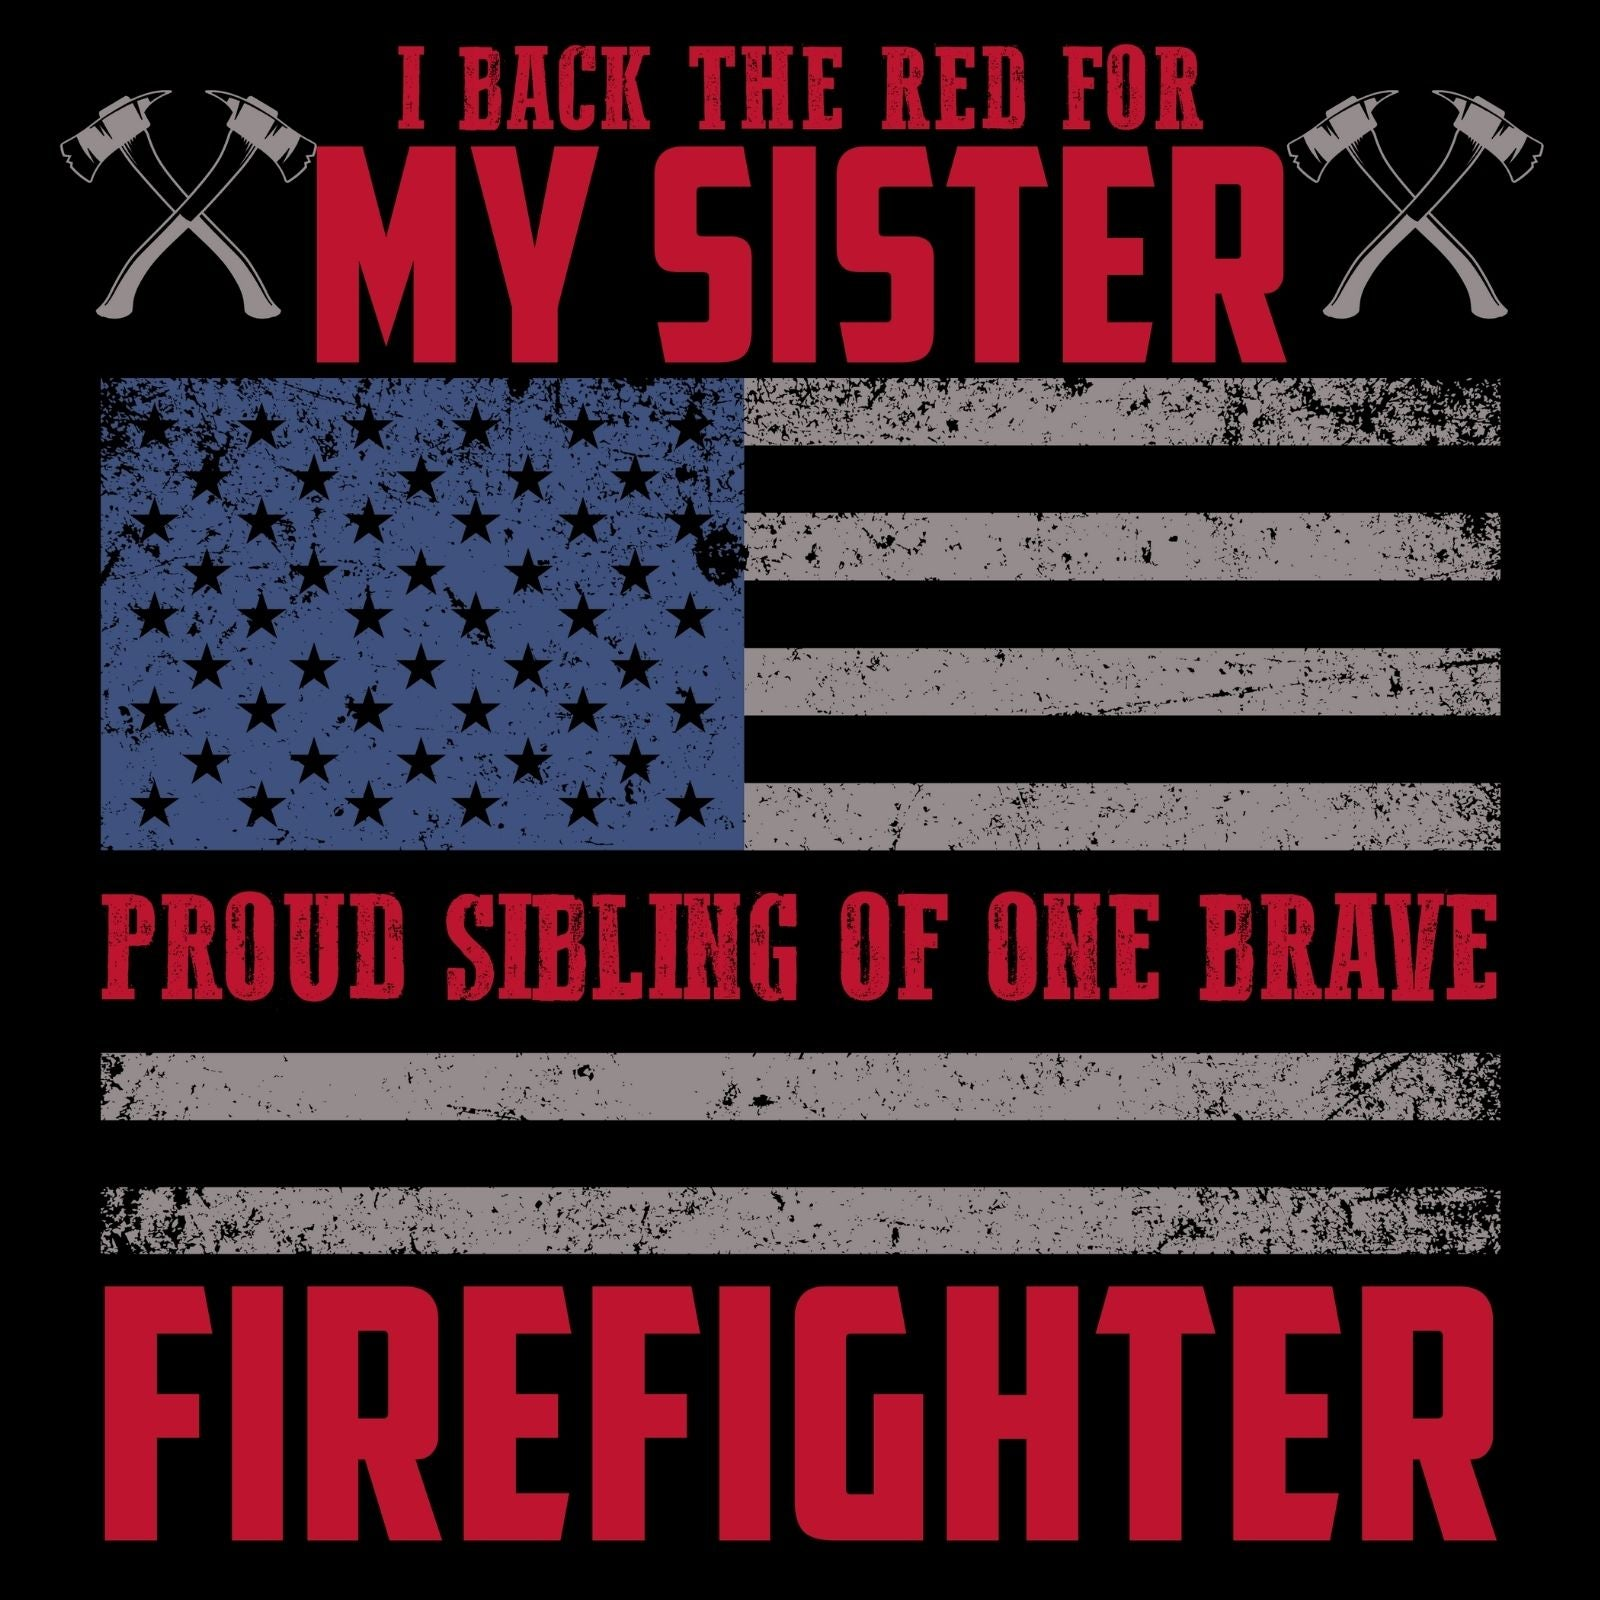 I Back The Red For My Sister, Proud Sibling Of One Brave Firefighter - Bastard Graphics